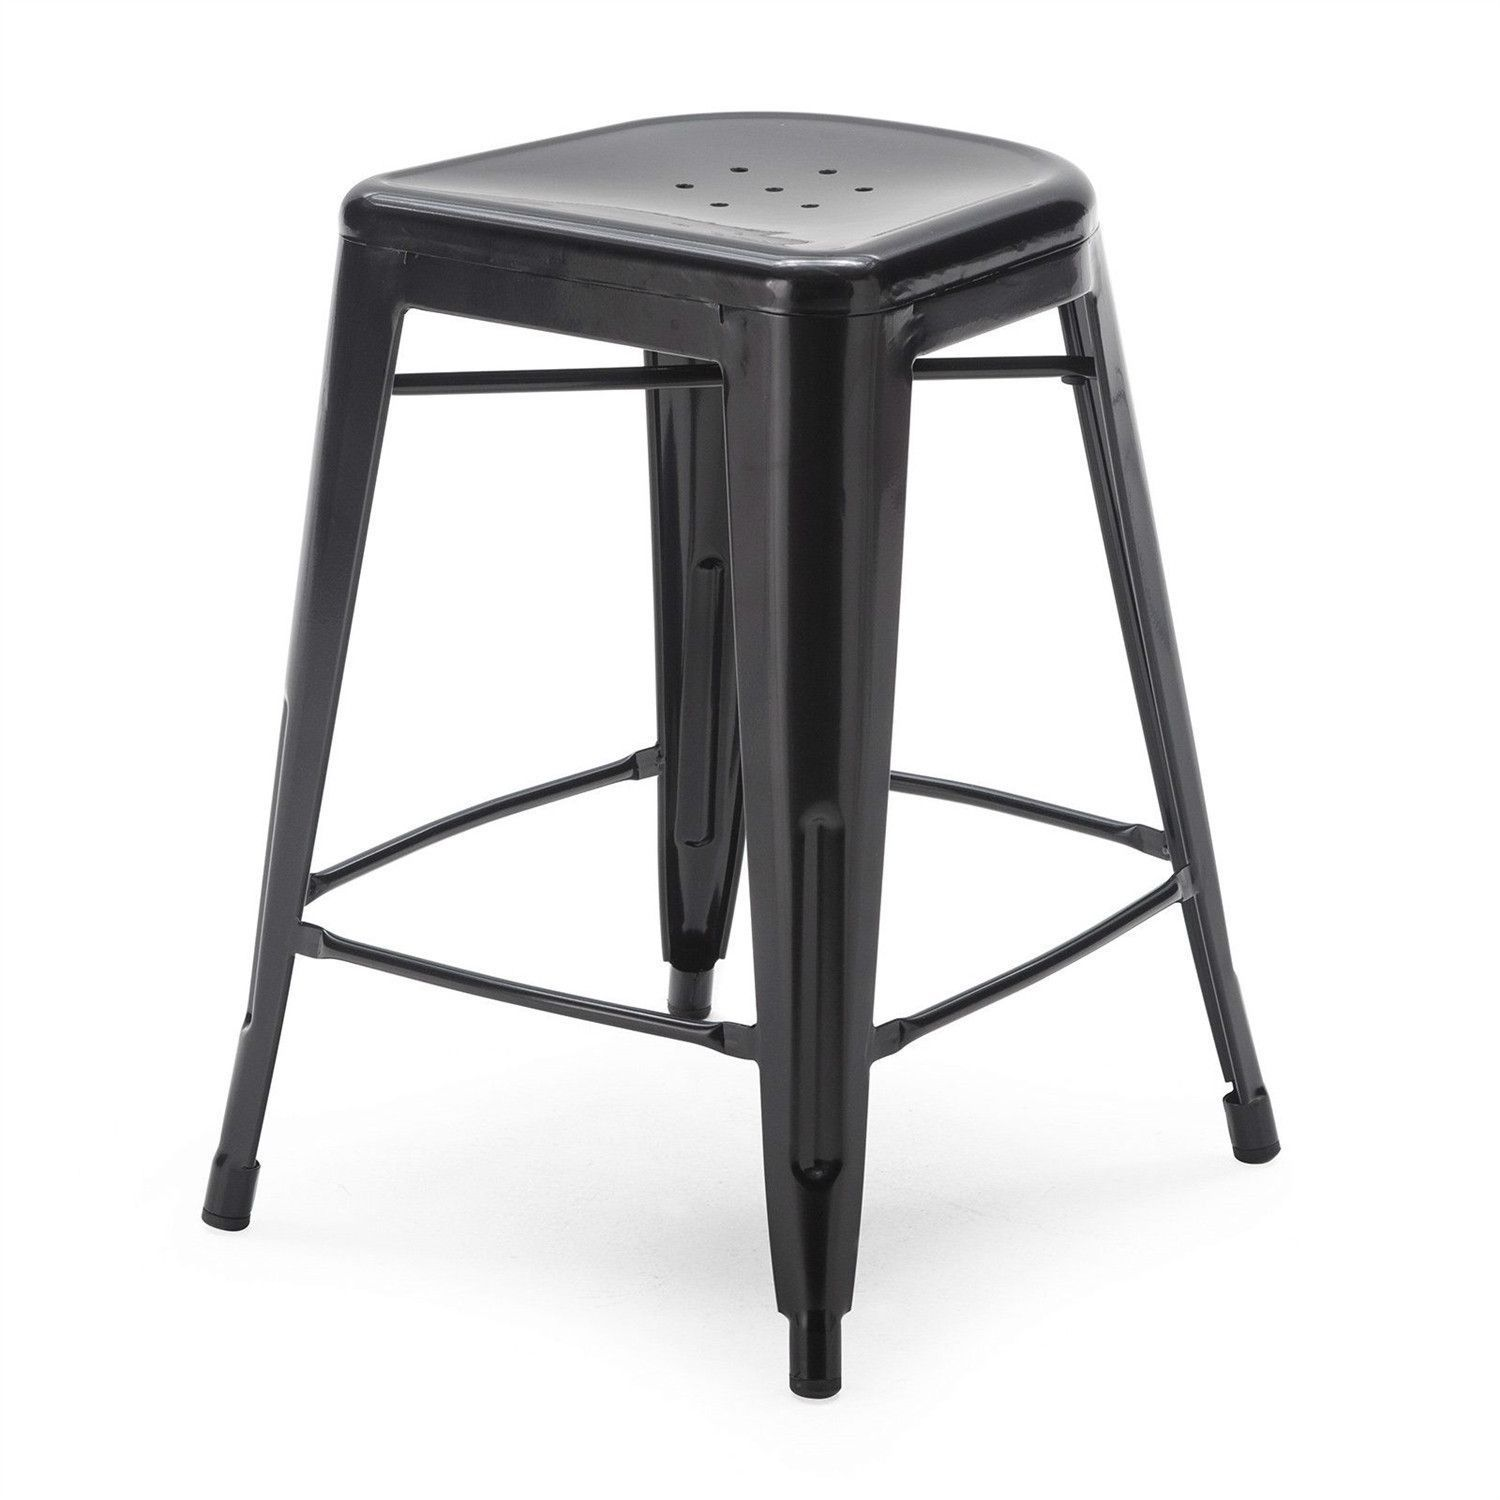 Set of modern inch black metal bar stools products